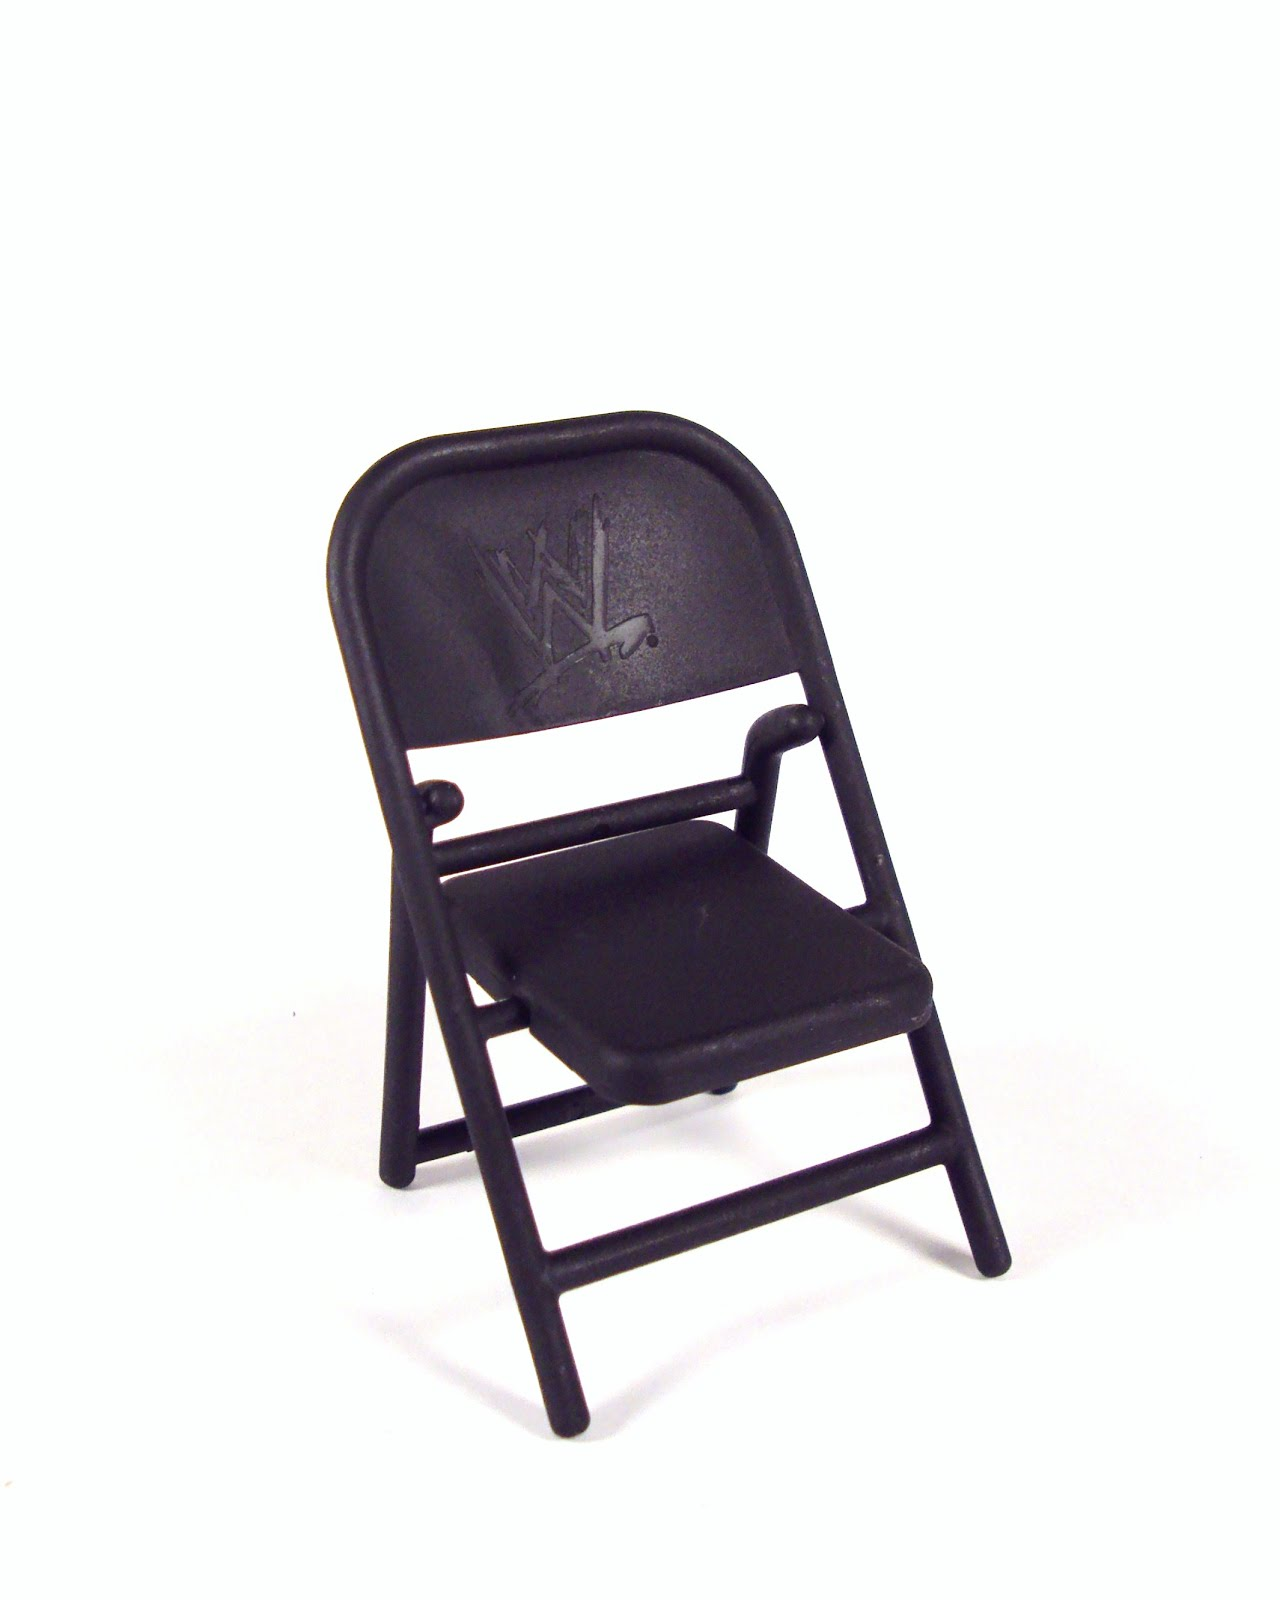 Steel Chair Used In Wwe Wooden Patio Chairs Plans 3b 39s Toy Hive Elite Exclusive Undertaker Wm28 Review